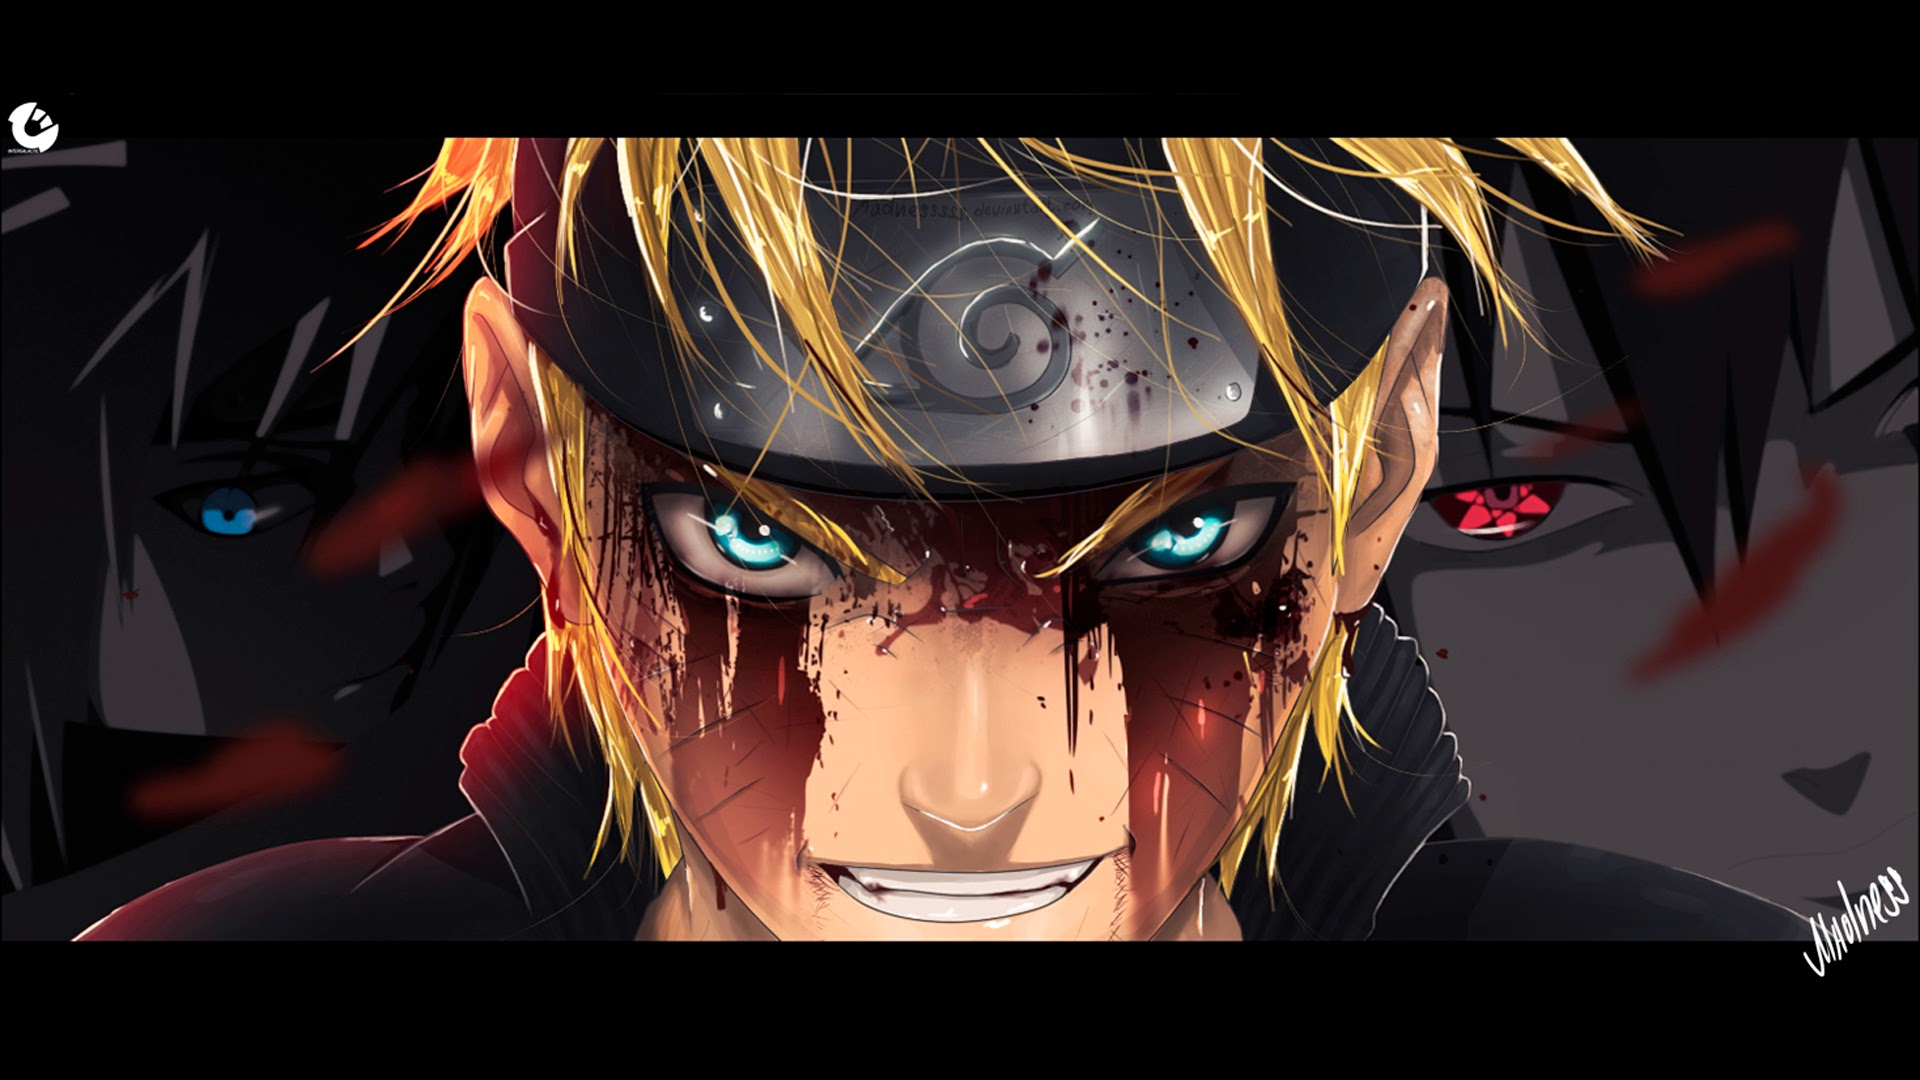 Hd Naruto Wallpapers - WallpaperSafari